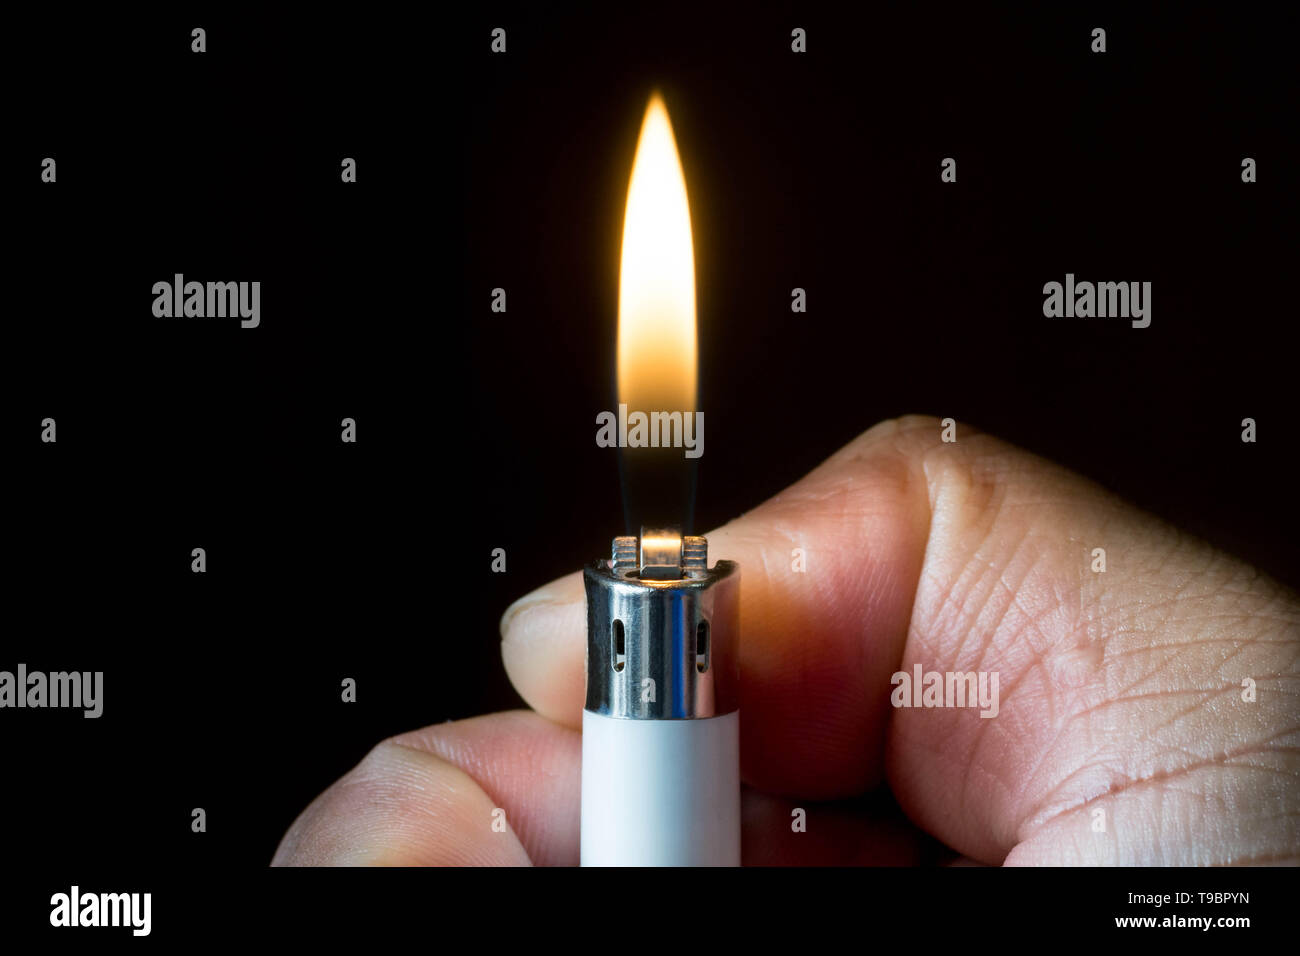 A hand lighting up a lighter with flame and dark background. - Stock Image